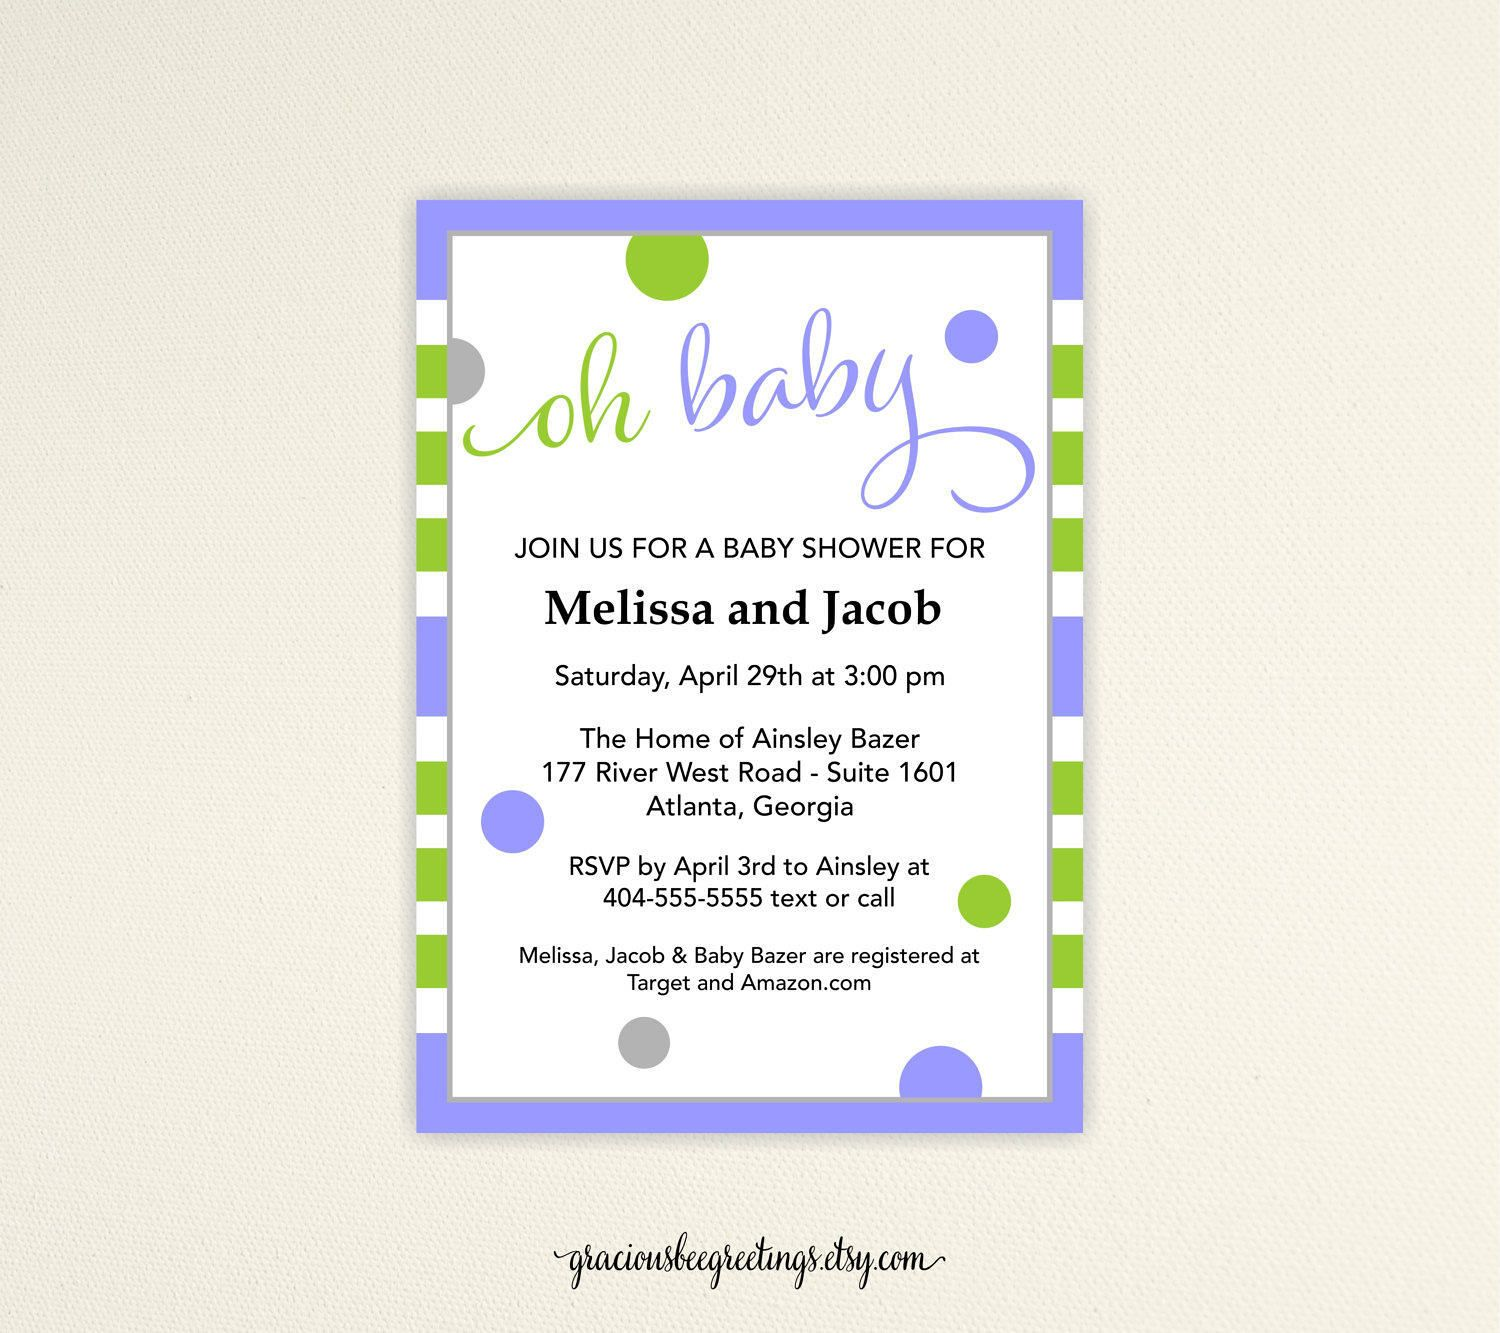 Oh Baby Shower Invitation, Couples Baby Shower, Gender Neutral Baby ...